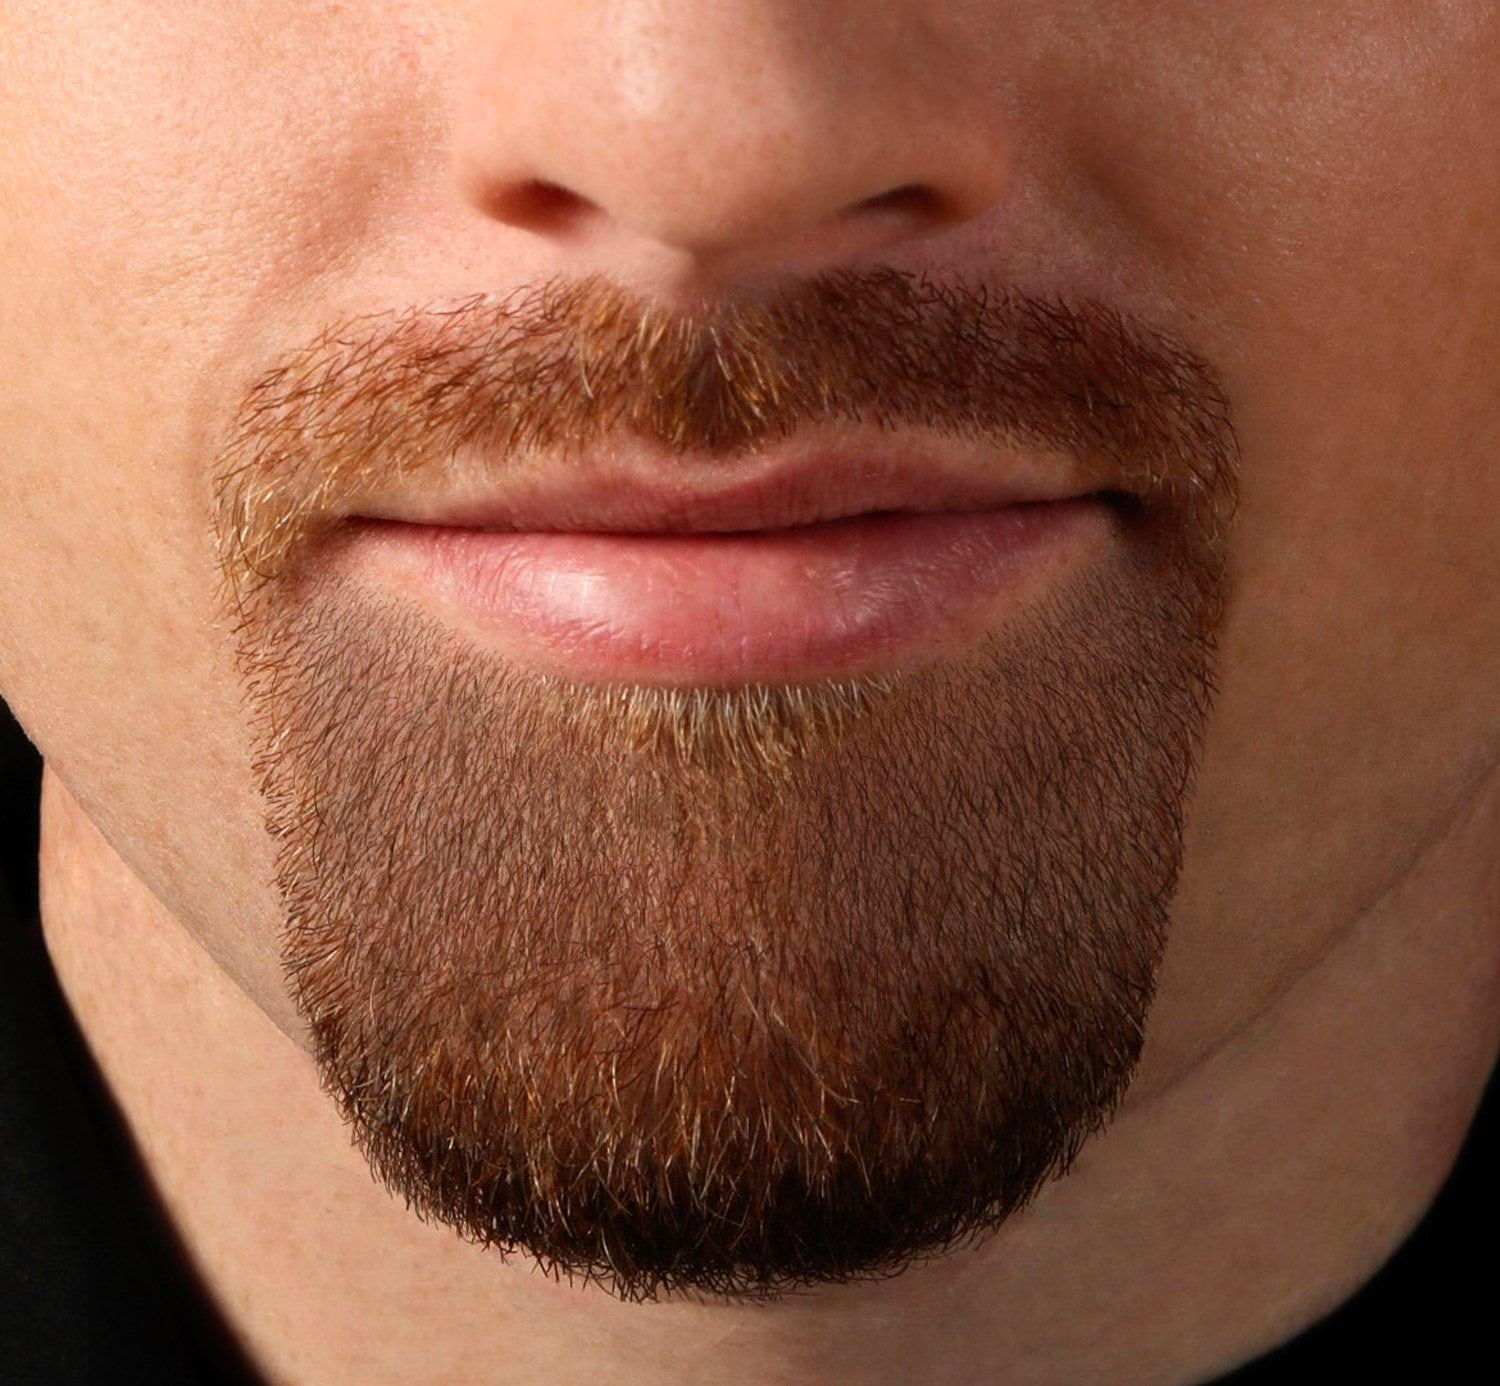 the-goatee-beard